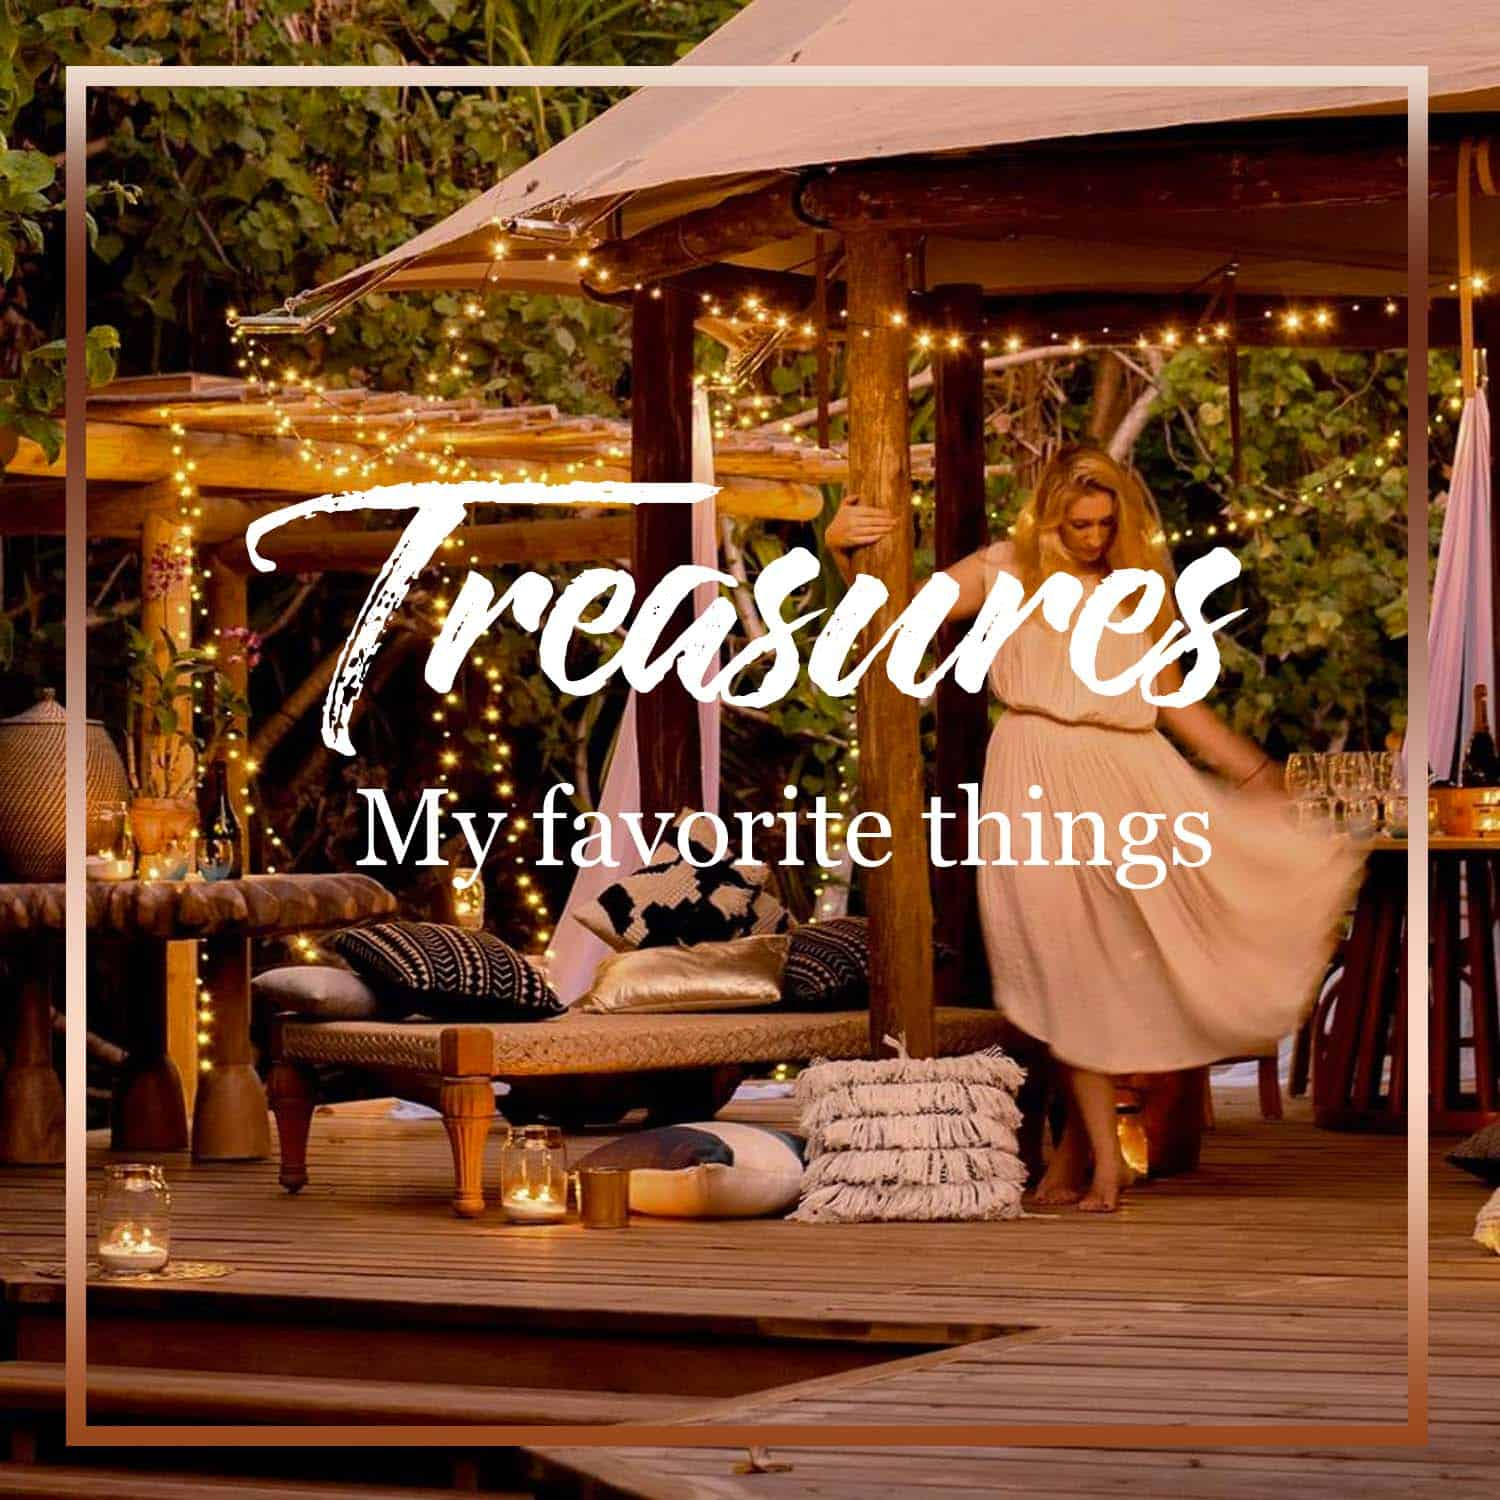 Travel & Treasures favorites